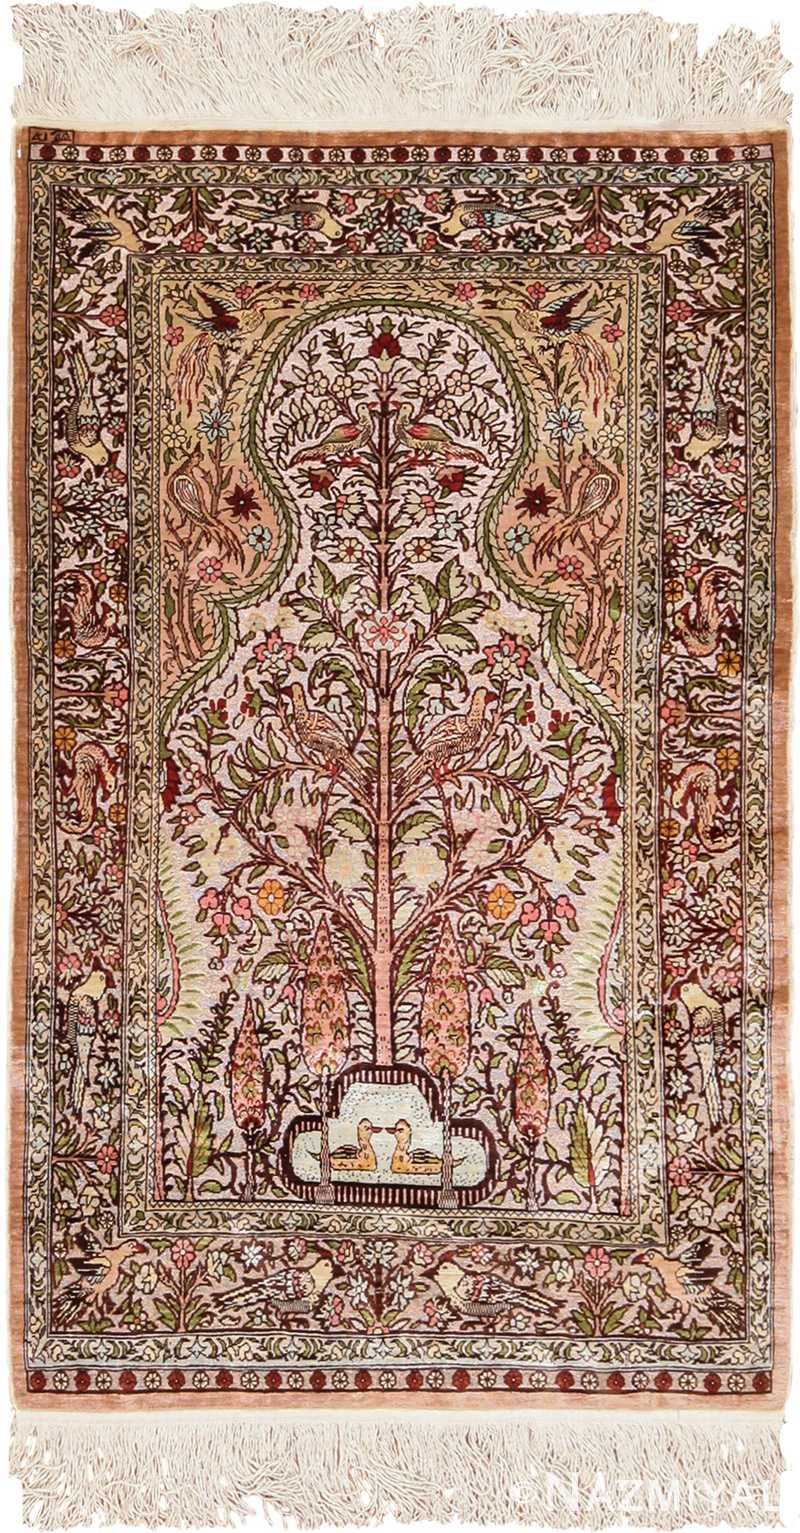 Metallic and Silk Souf Tree of Life Design Hereke Turkish Prayer Rug 49612 by nazmiyal